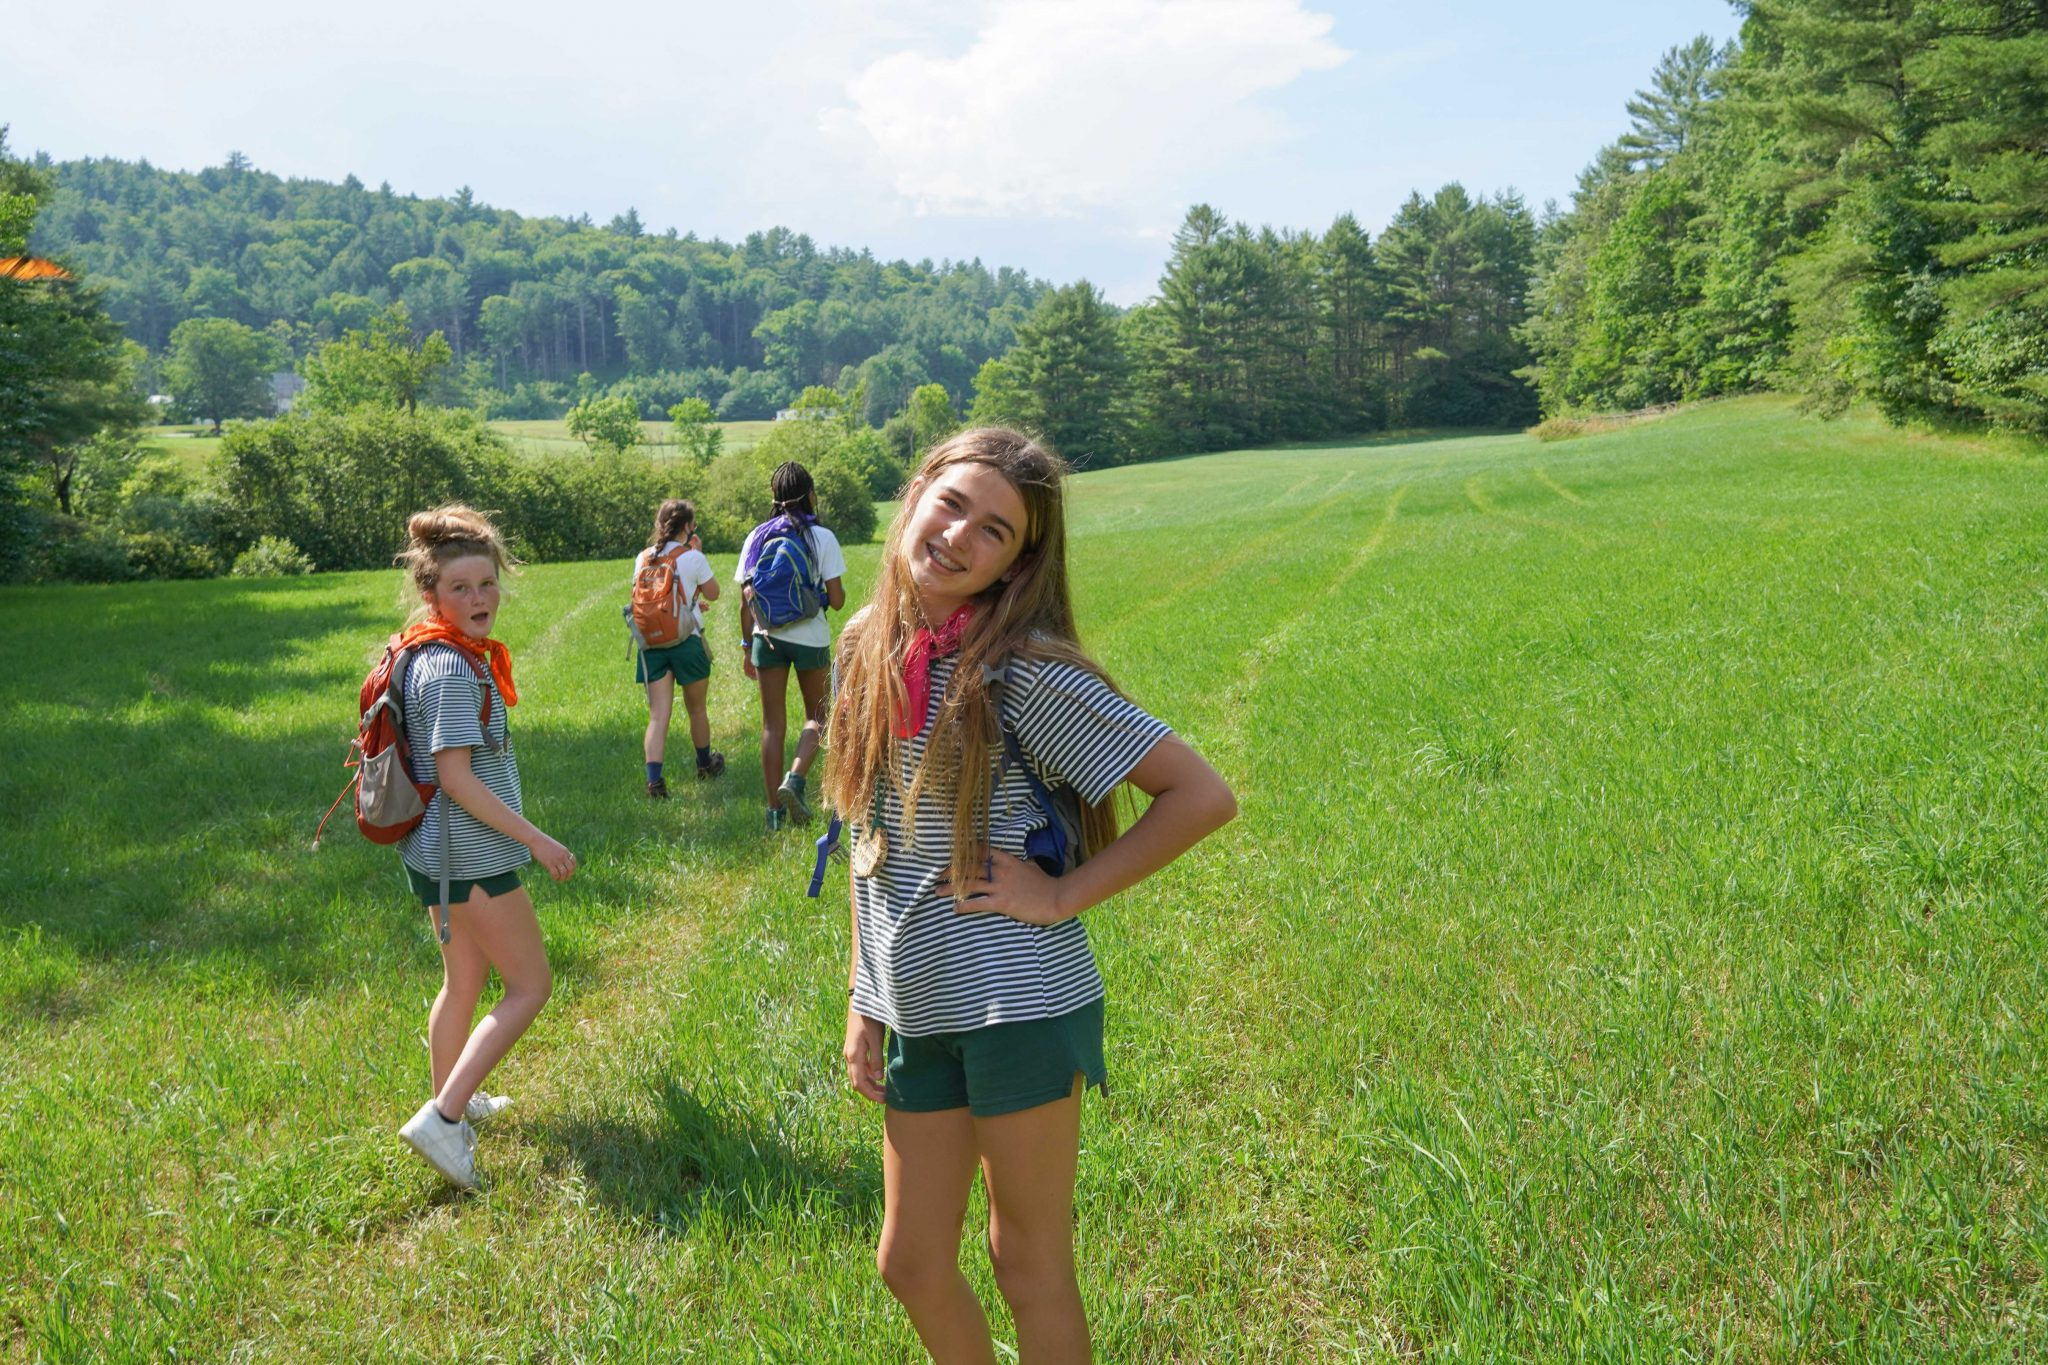 A smiling Hiver with a small camper group in a grassy field on a hike.